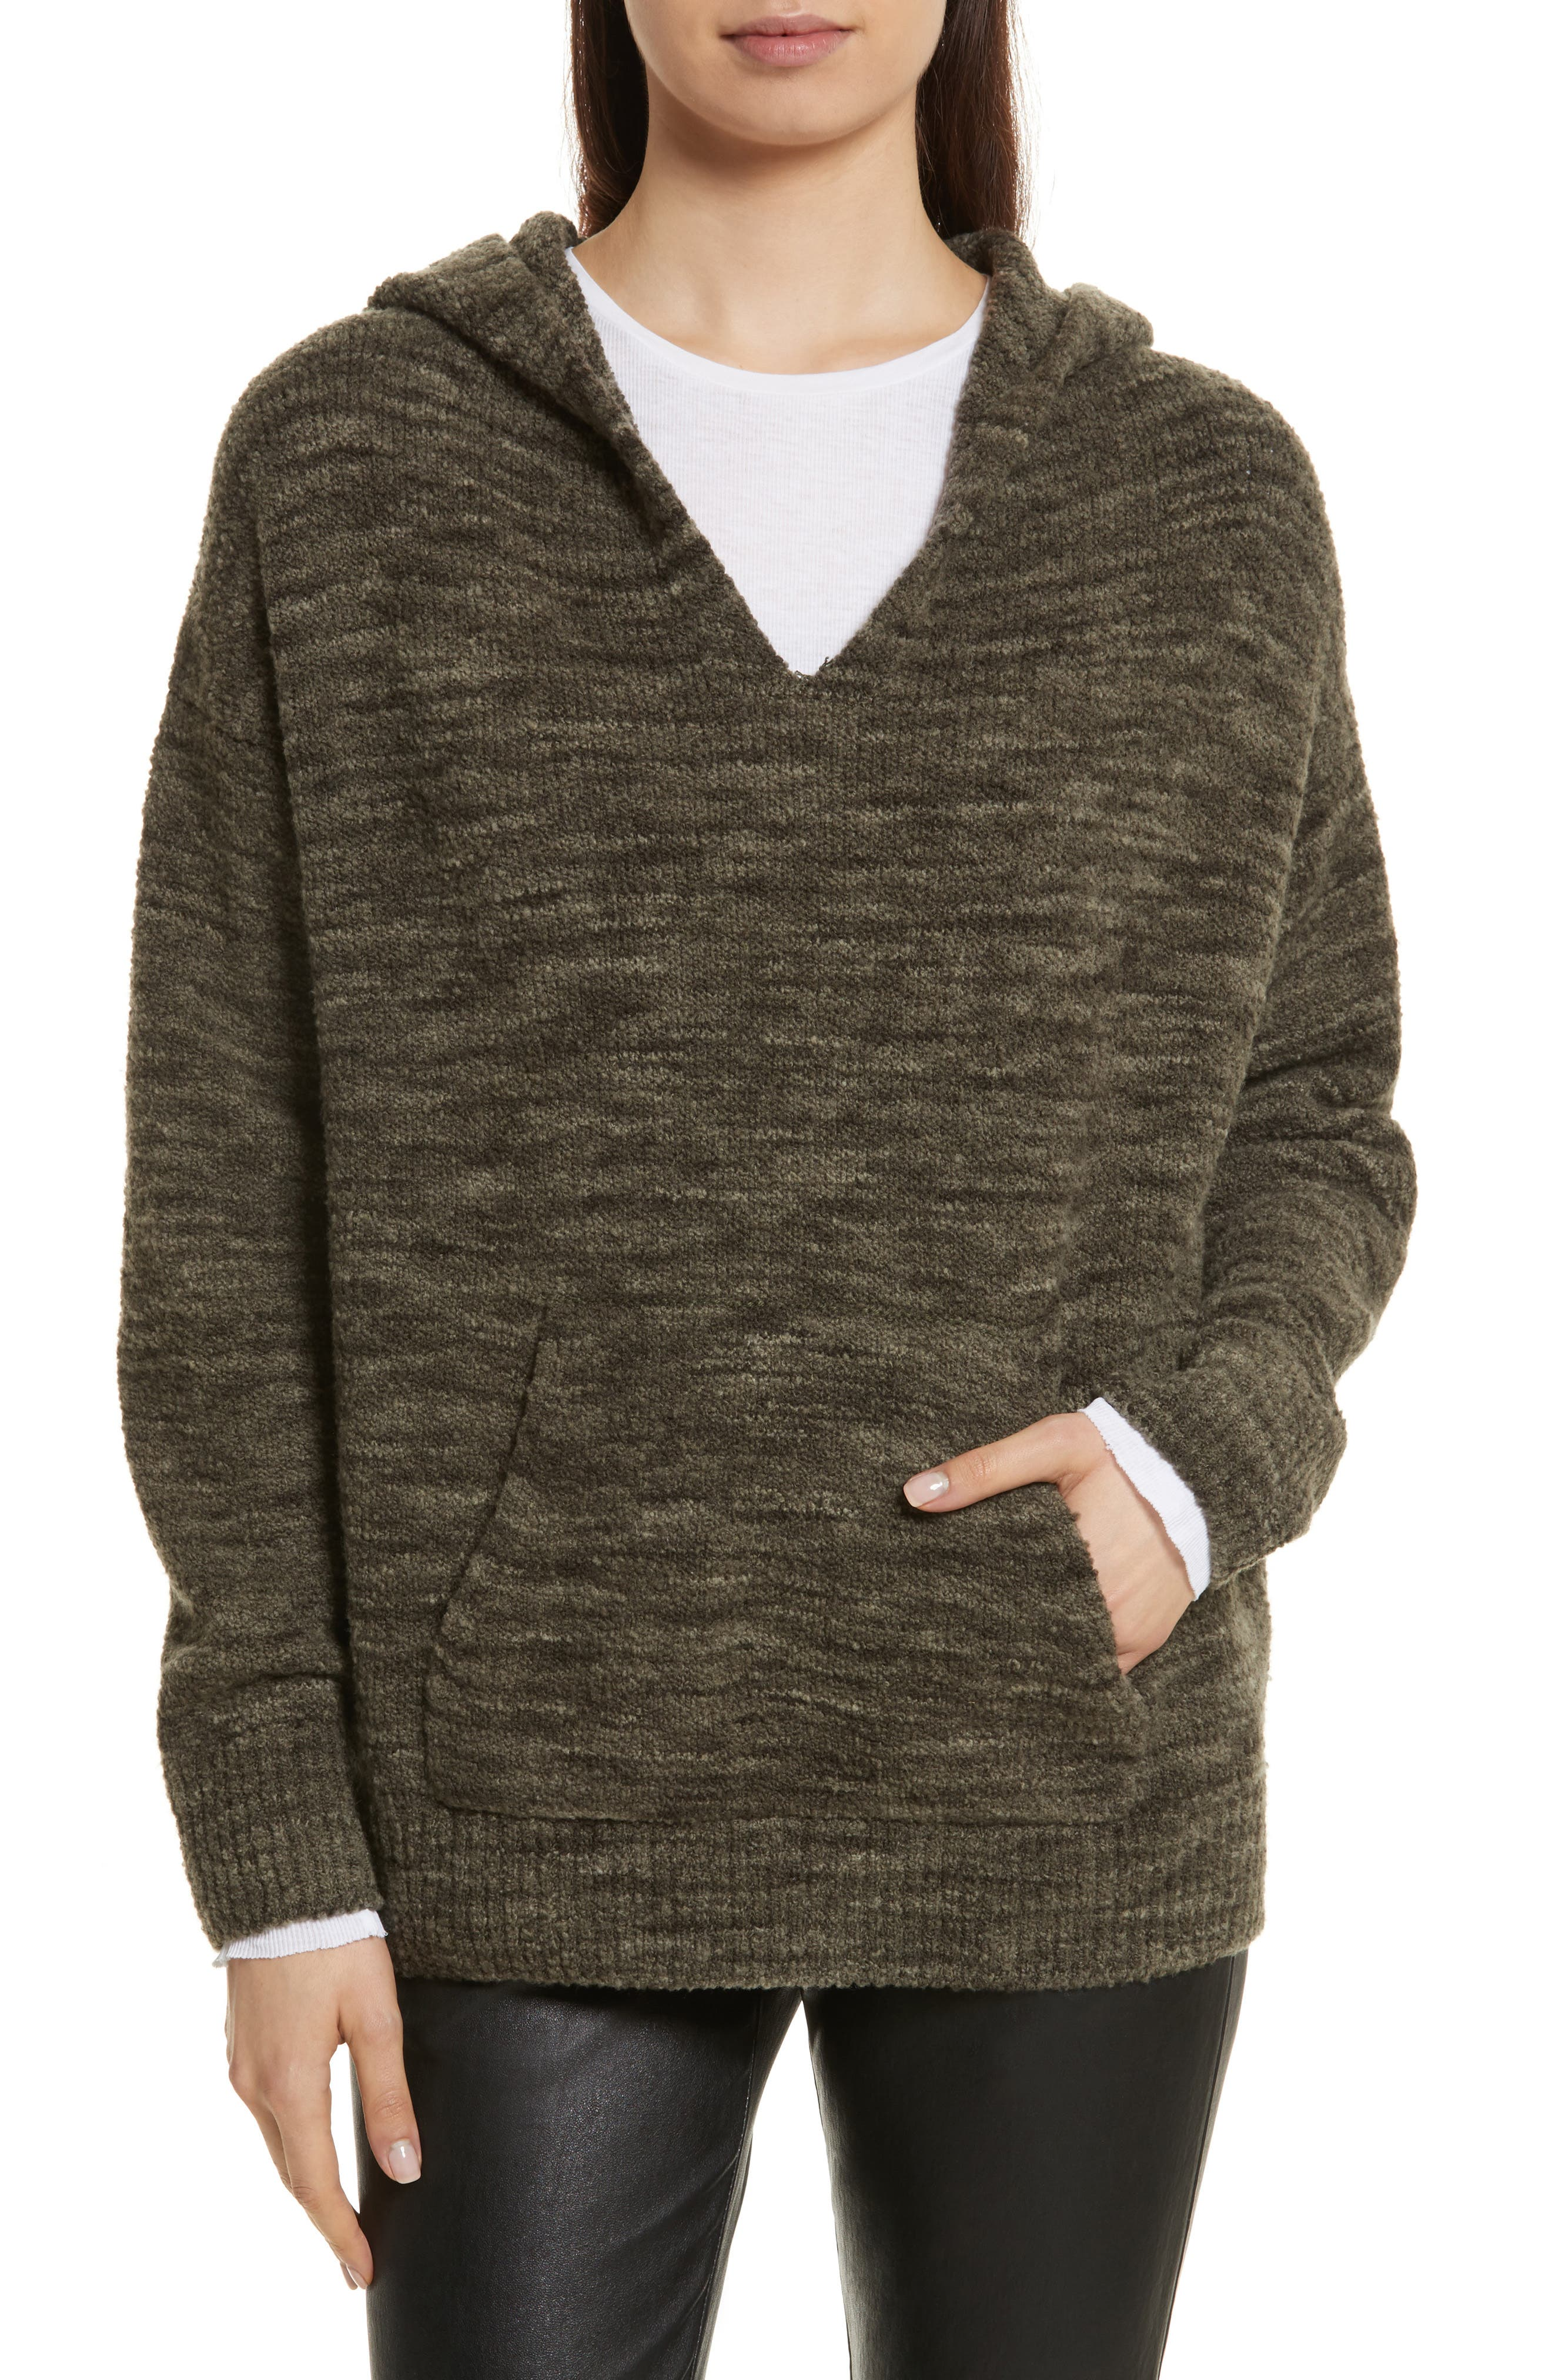 Space Dye Hoodie Sweater,                             Main thumbnail 1, color,                             343